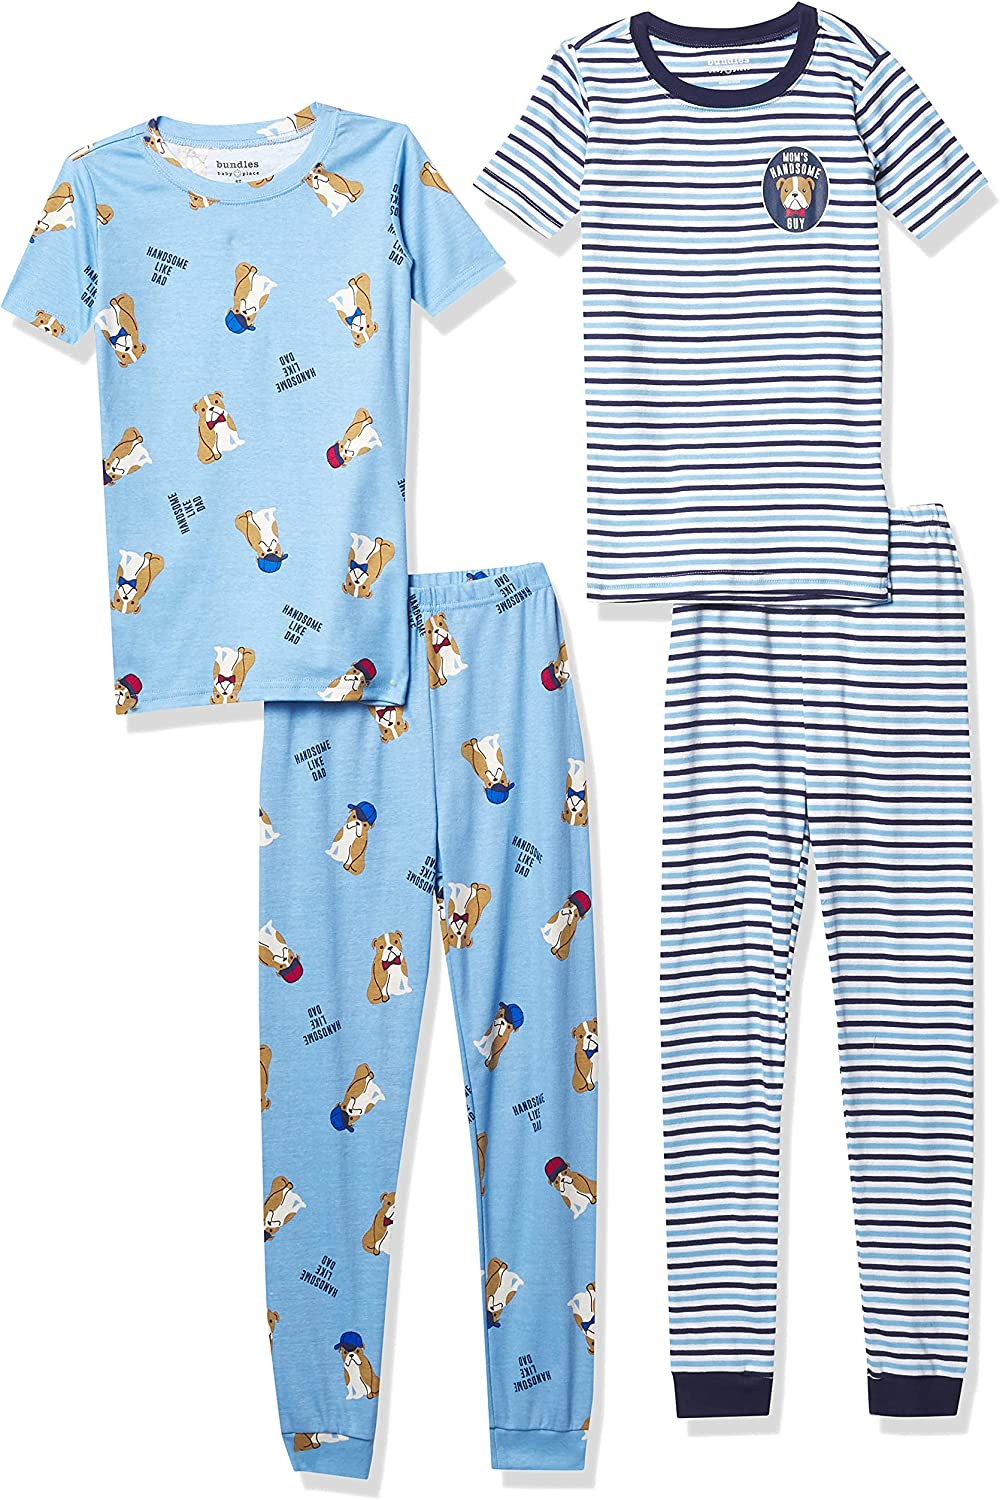 The Children's Place Baby And Toddler Boys Bull Dog Snug Fit Cotton 4-Piece Pajamas